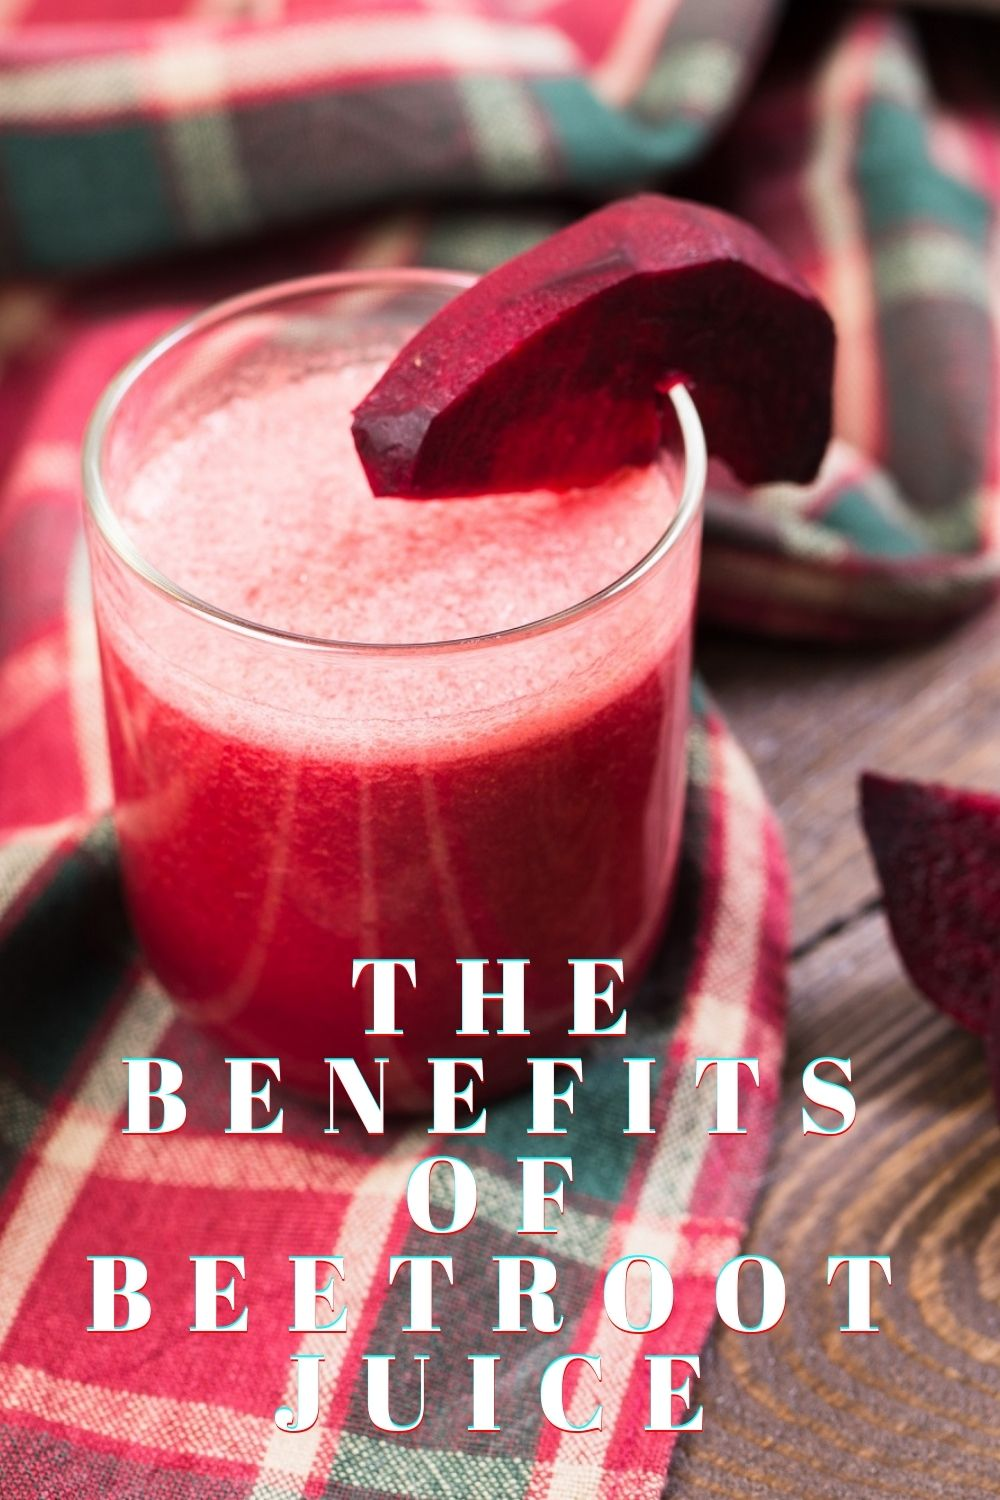 The benefits of beetroot juice: Why you should drink it every day